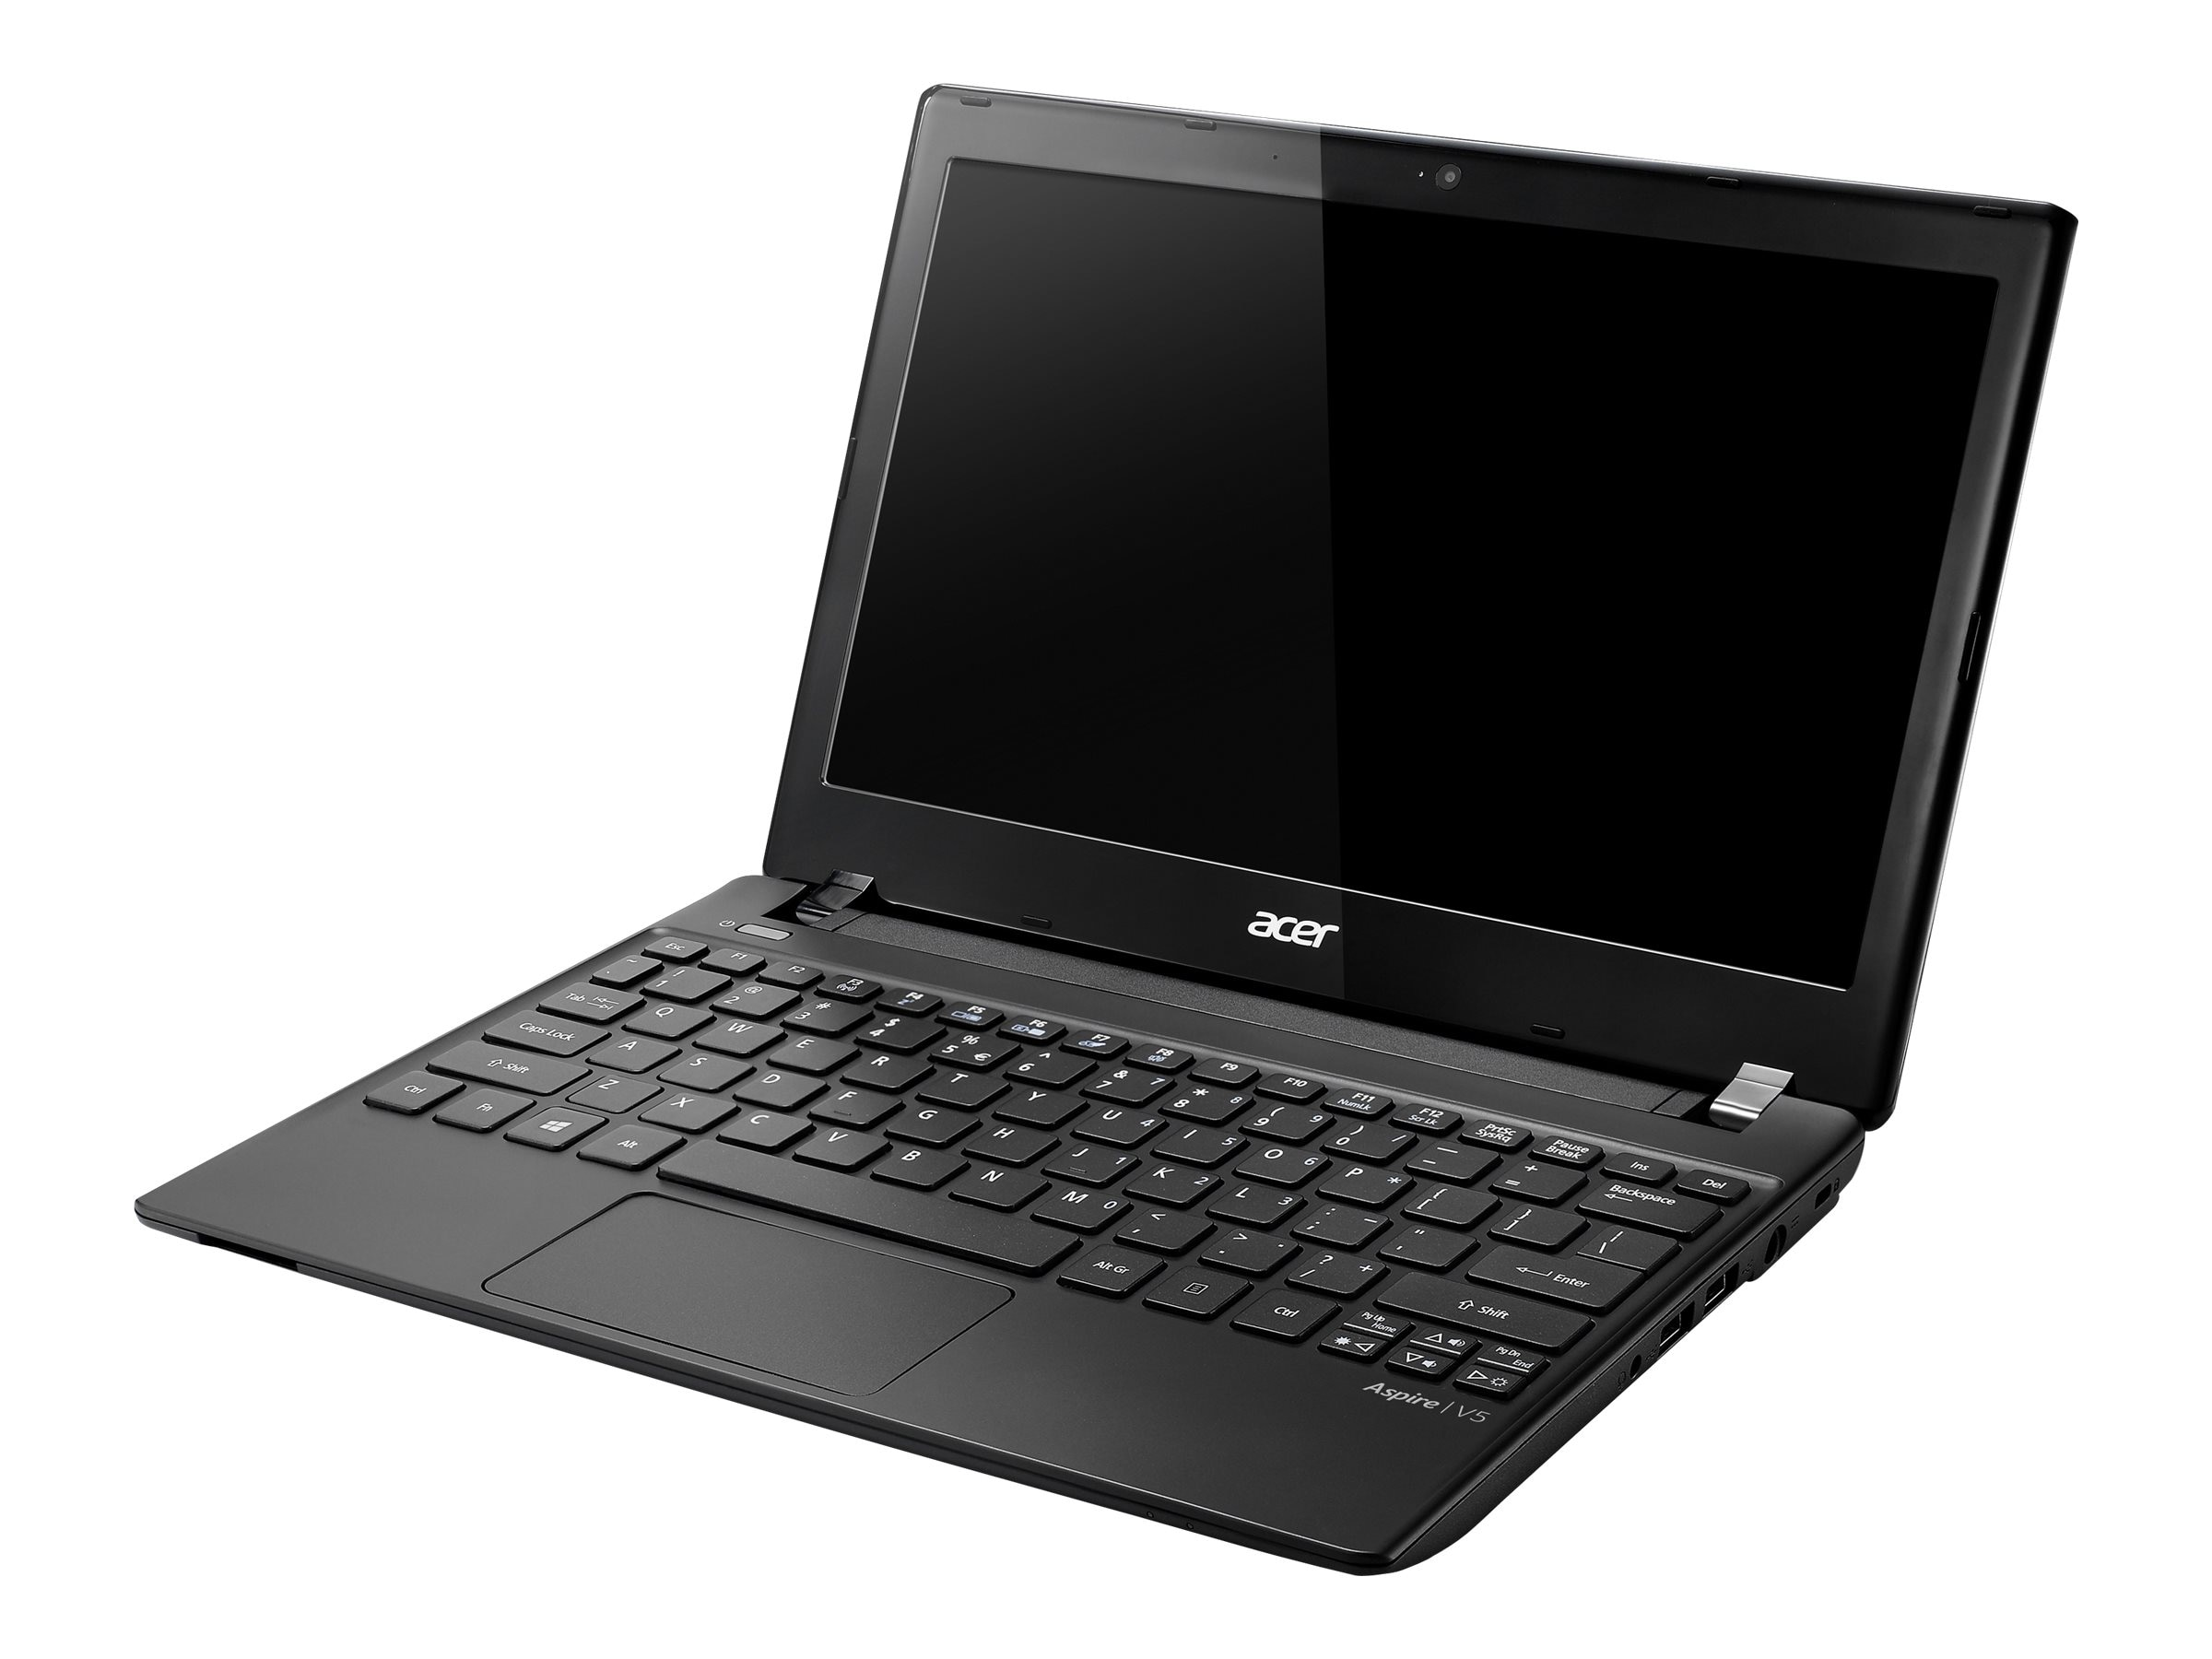 Acer Aspire V5-131-2680 Celeron 1007U 1.6GHz 4GB 500GB abgn NIC BT WC 6C 11.6 HD W7HP64